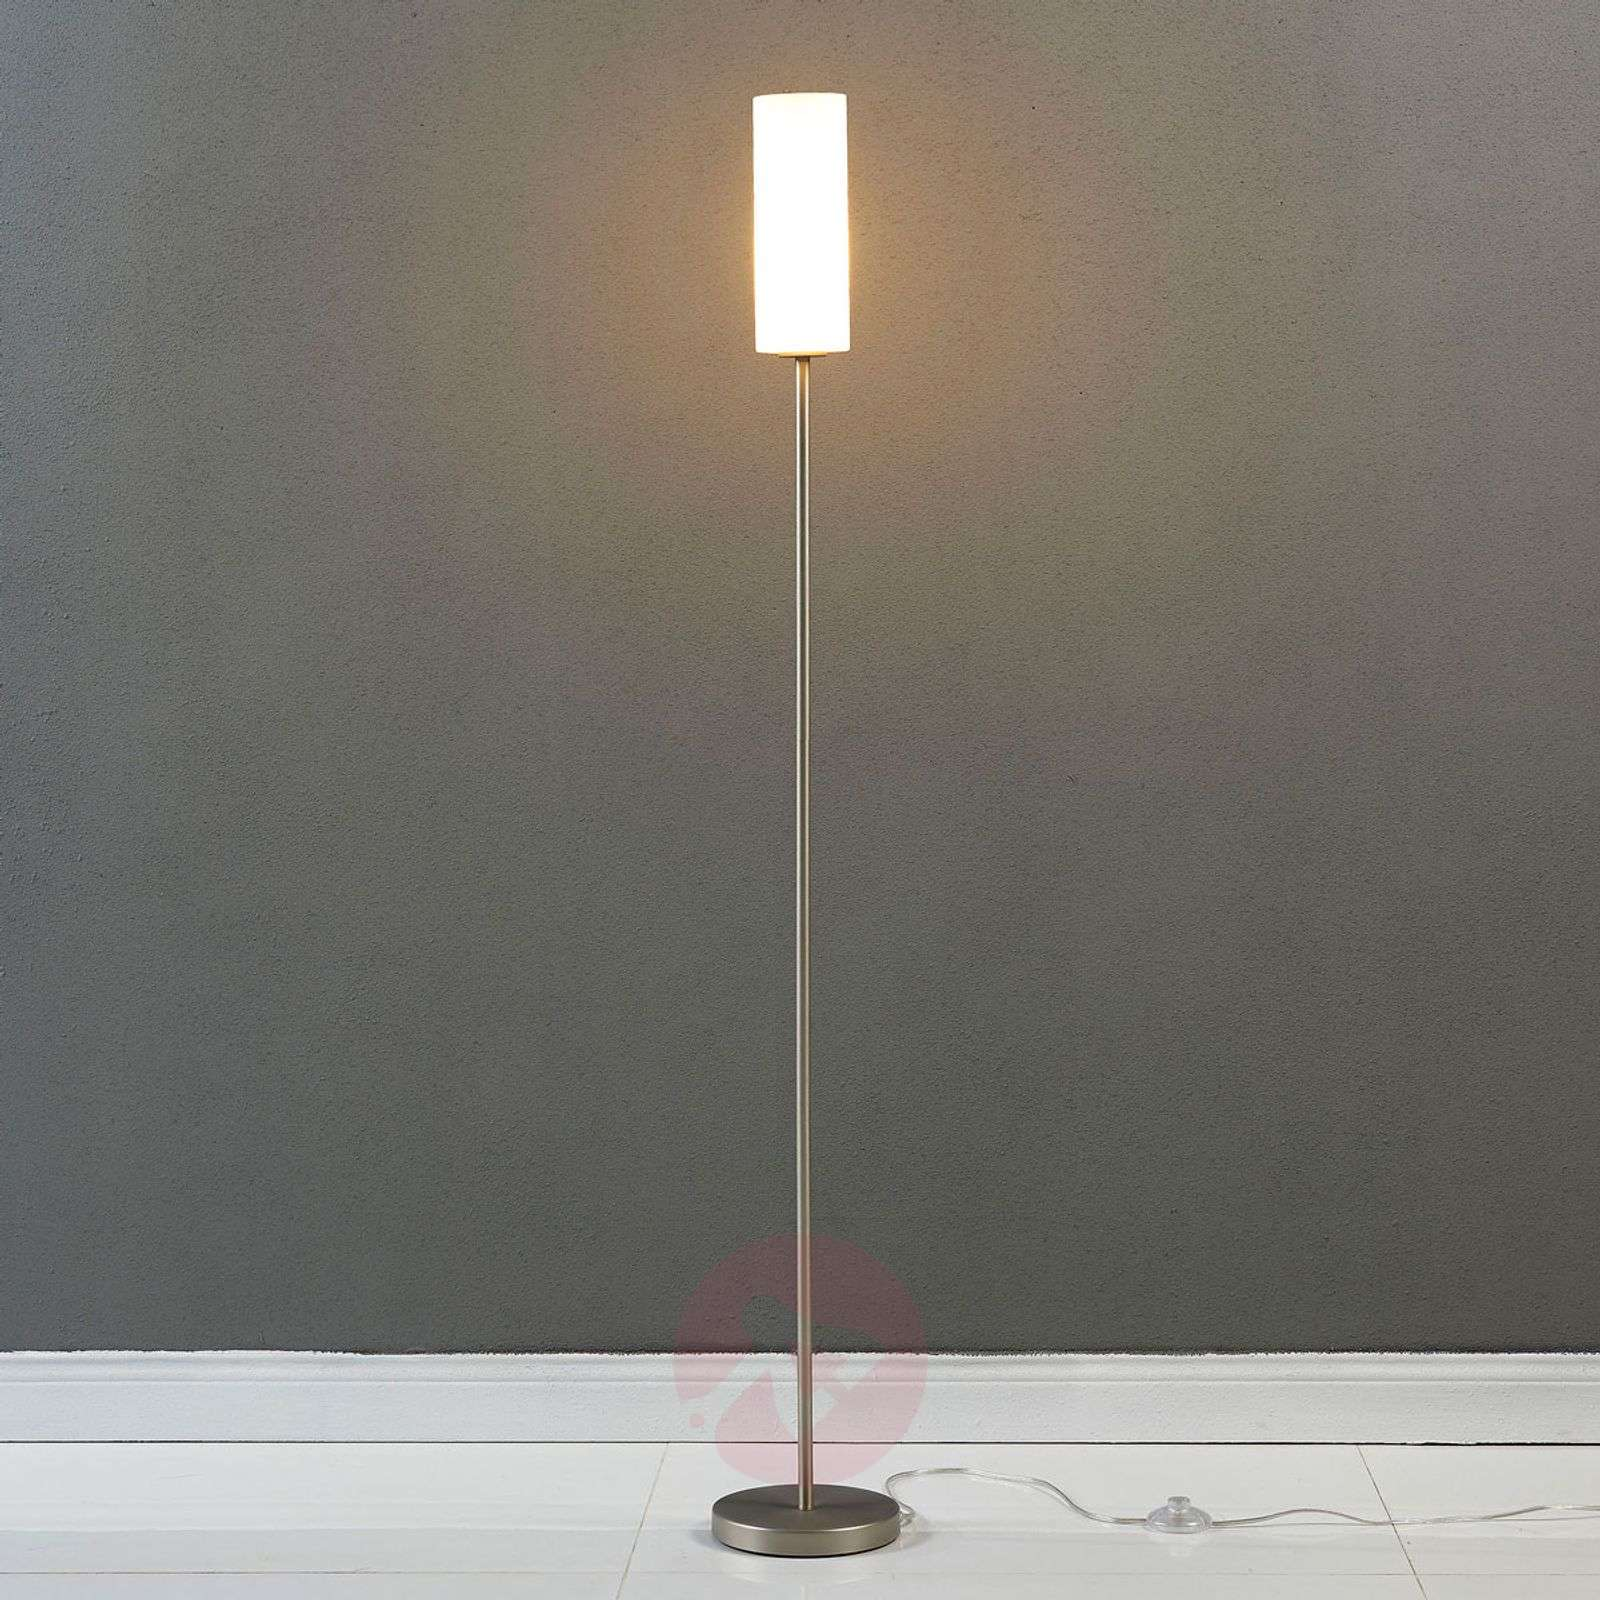 Discreet floor lamp Vinsta with slim glass shade | Lights.co.uk